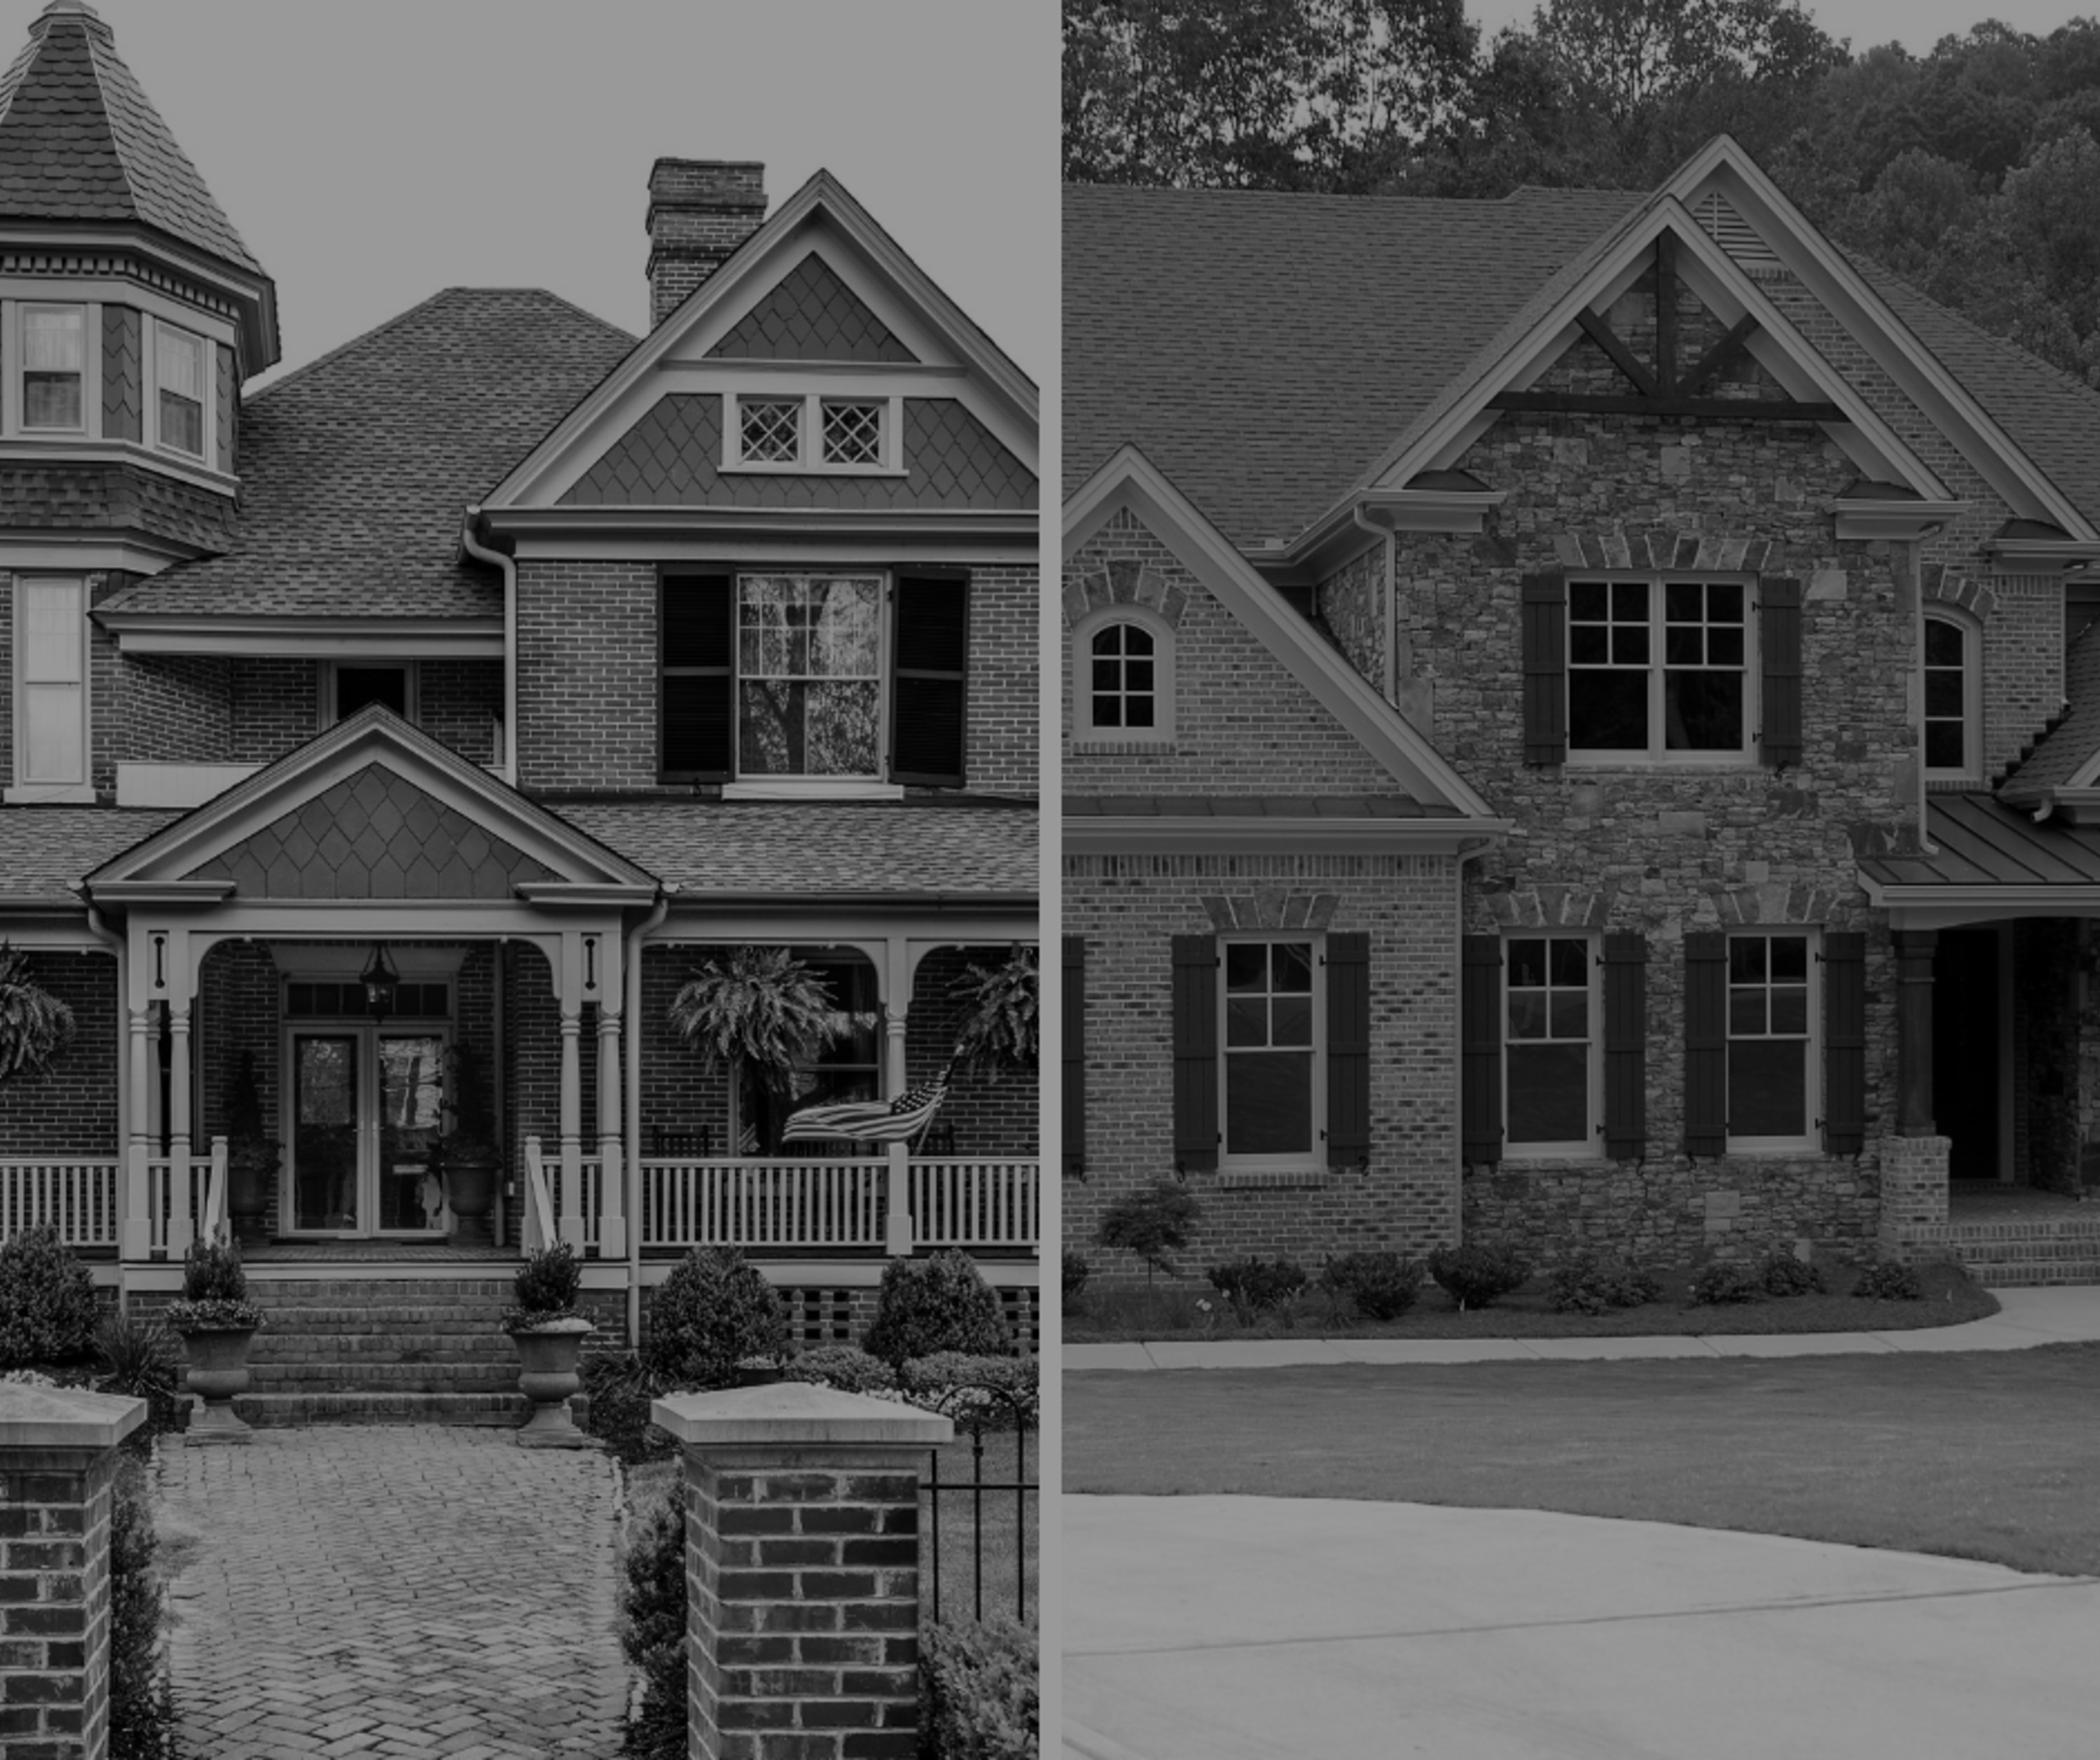 NEW HOME OR OLD & HISTORIC?